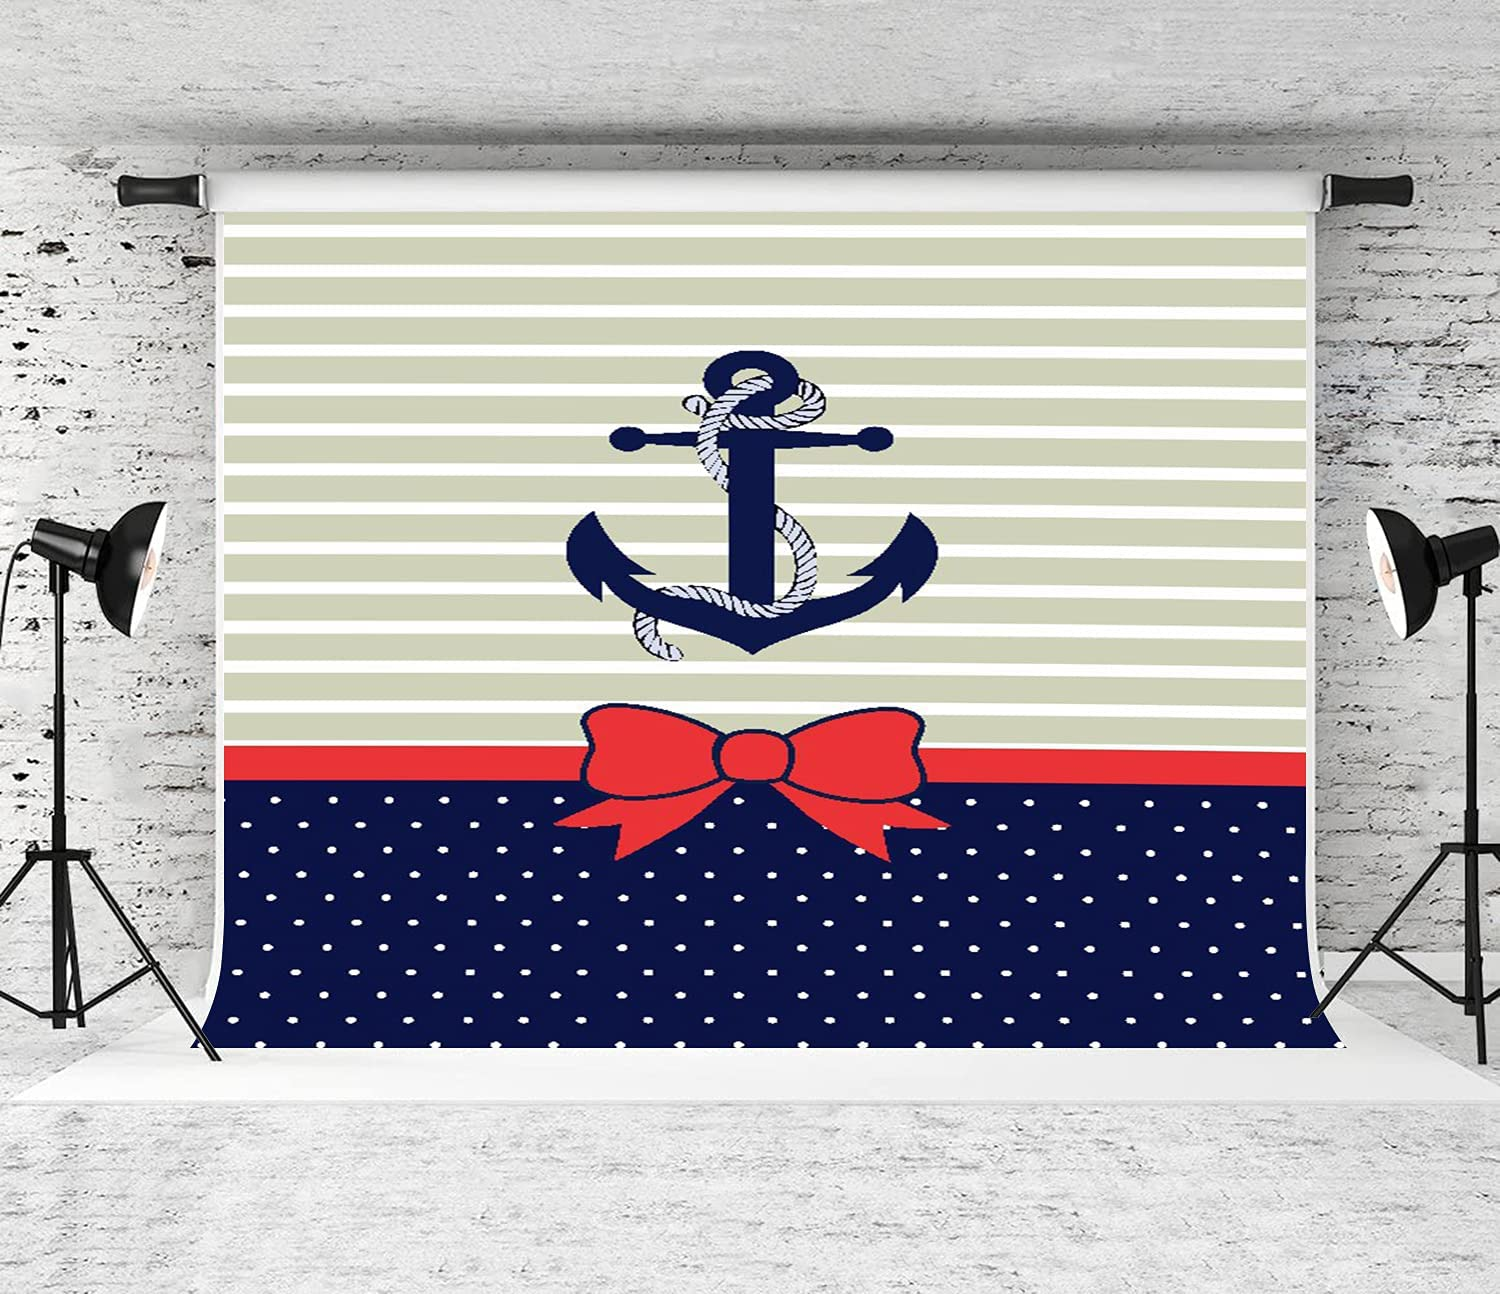 ZOANEN Photography Background Anchor Bowknot Stripe Party dots Year-end annual account Seasonal Wrap Introduction D